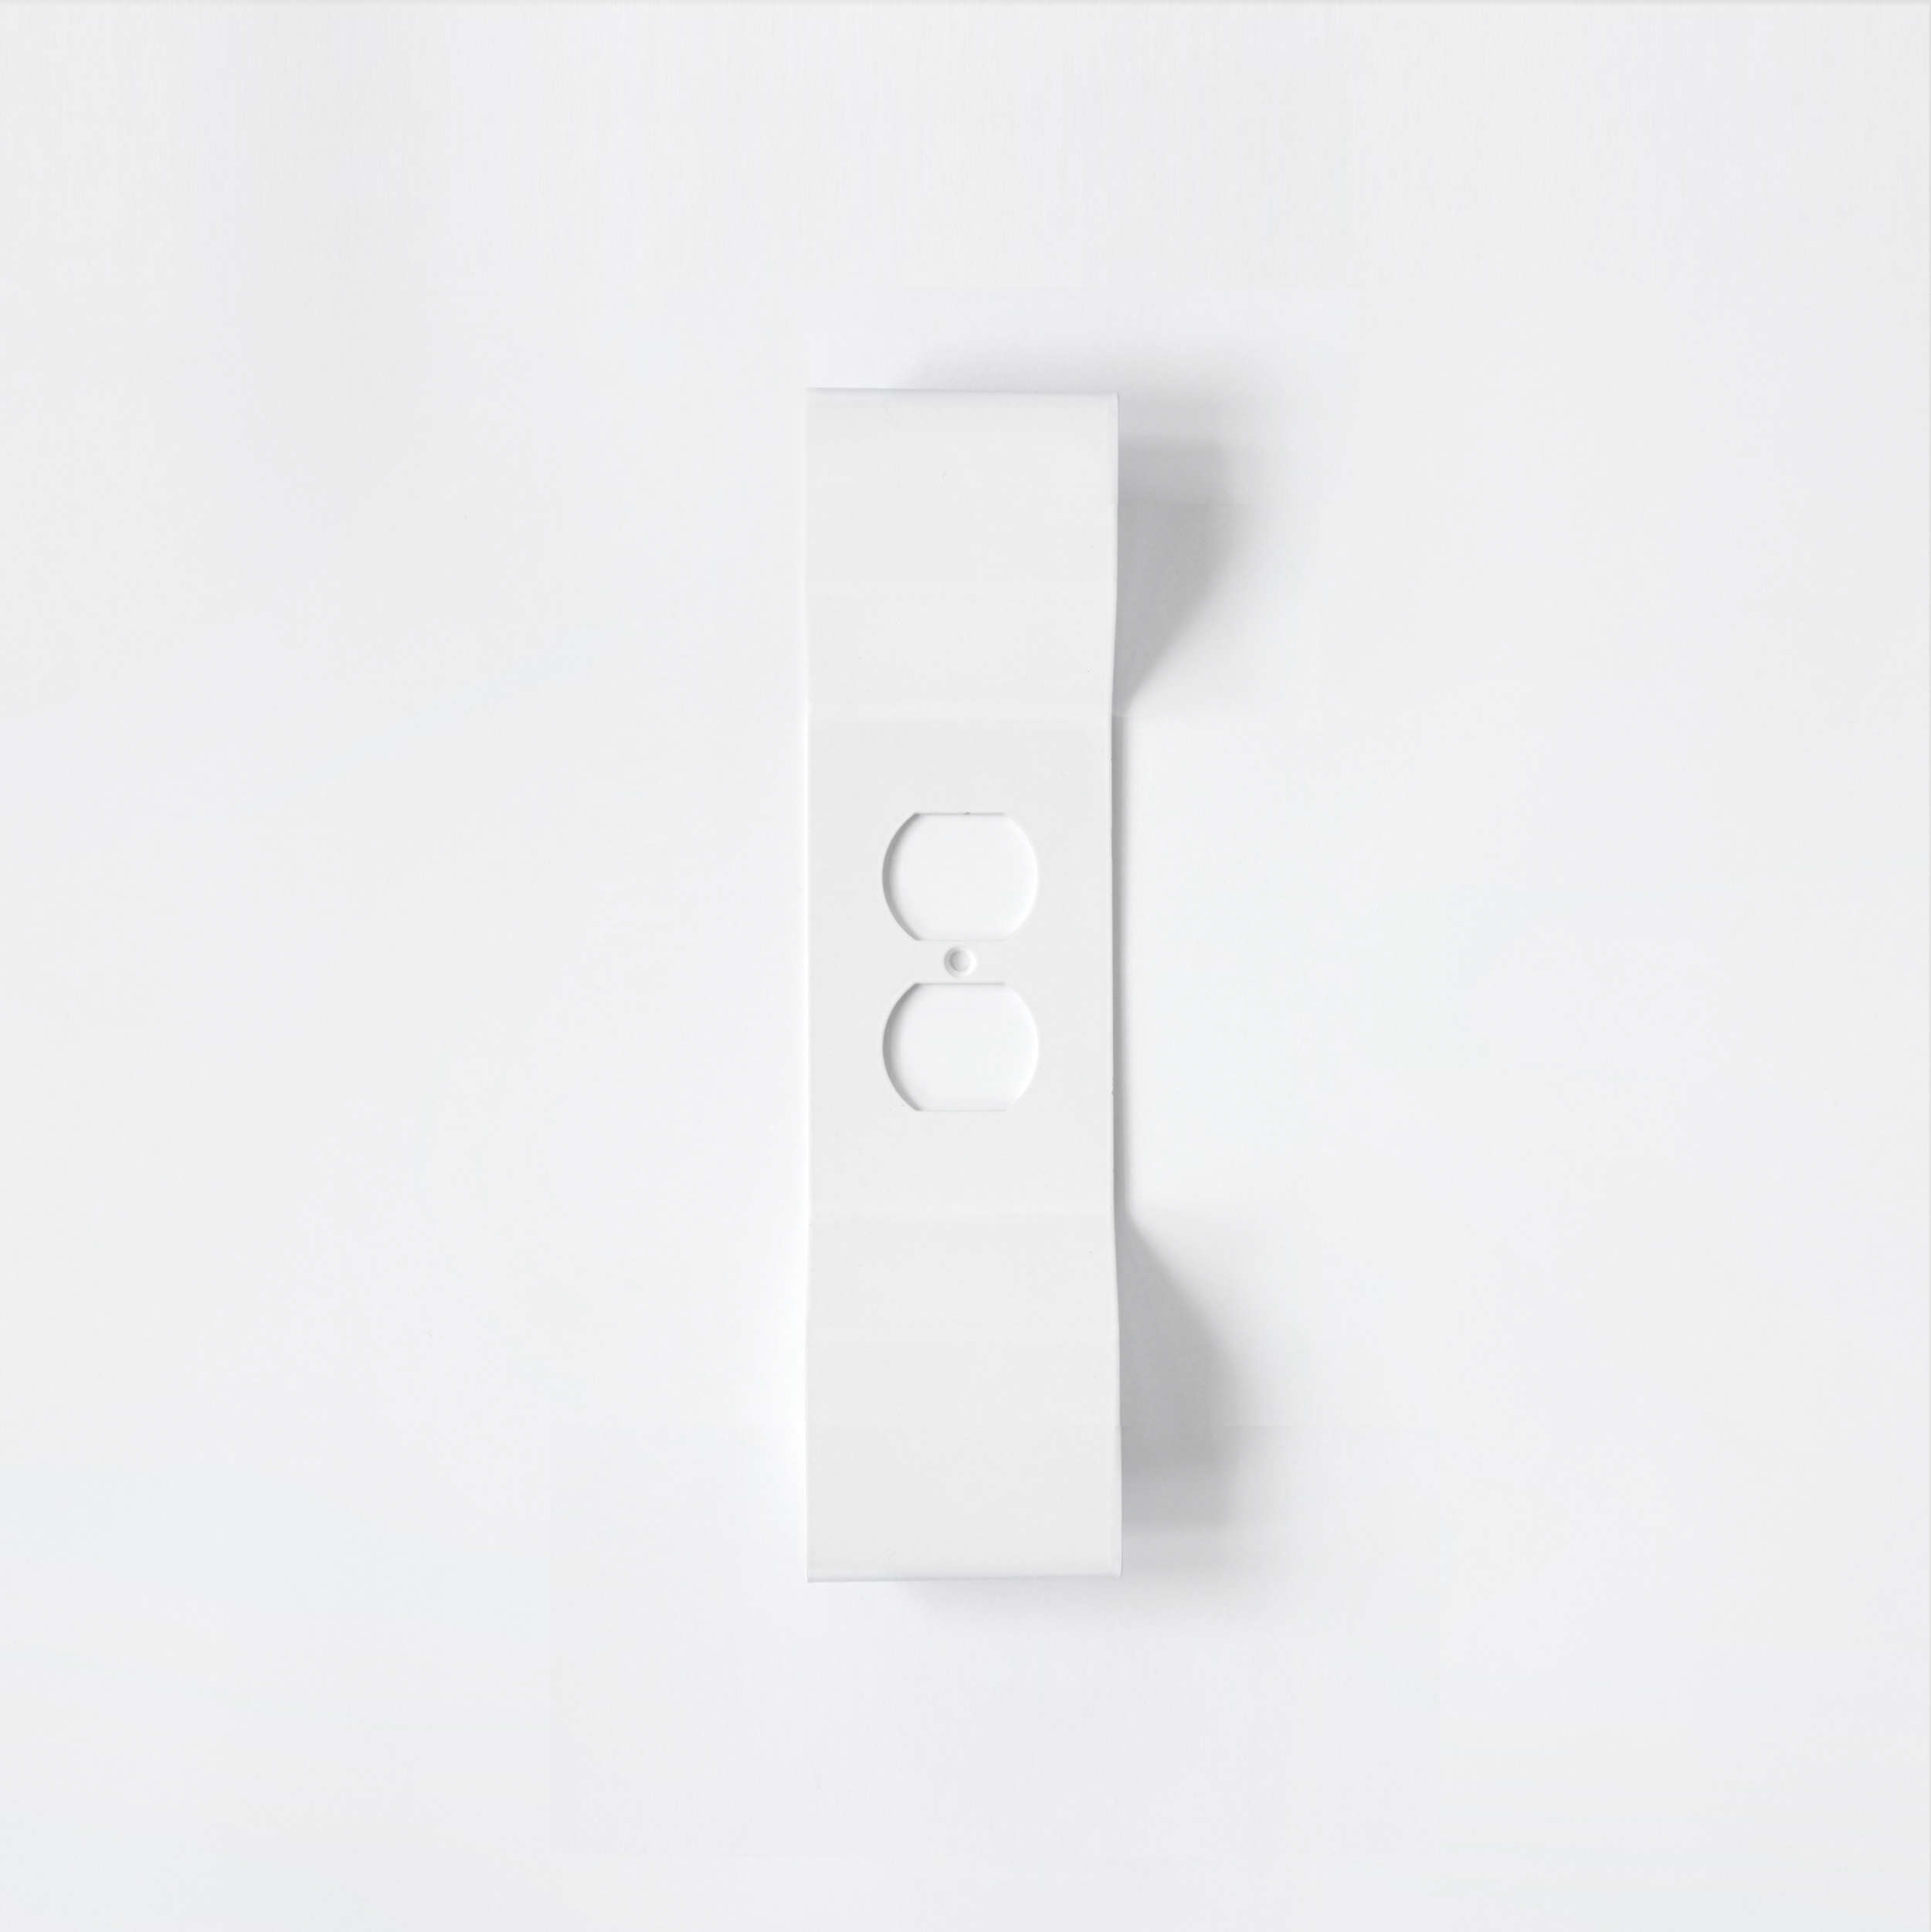 thom fougere cord wrap remodelista 12